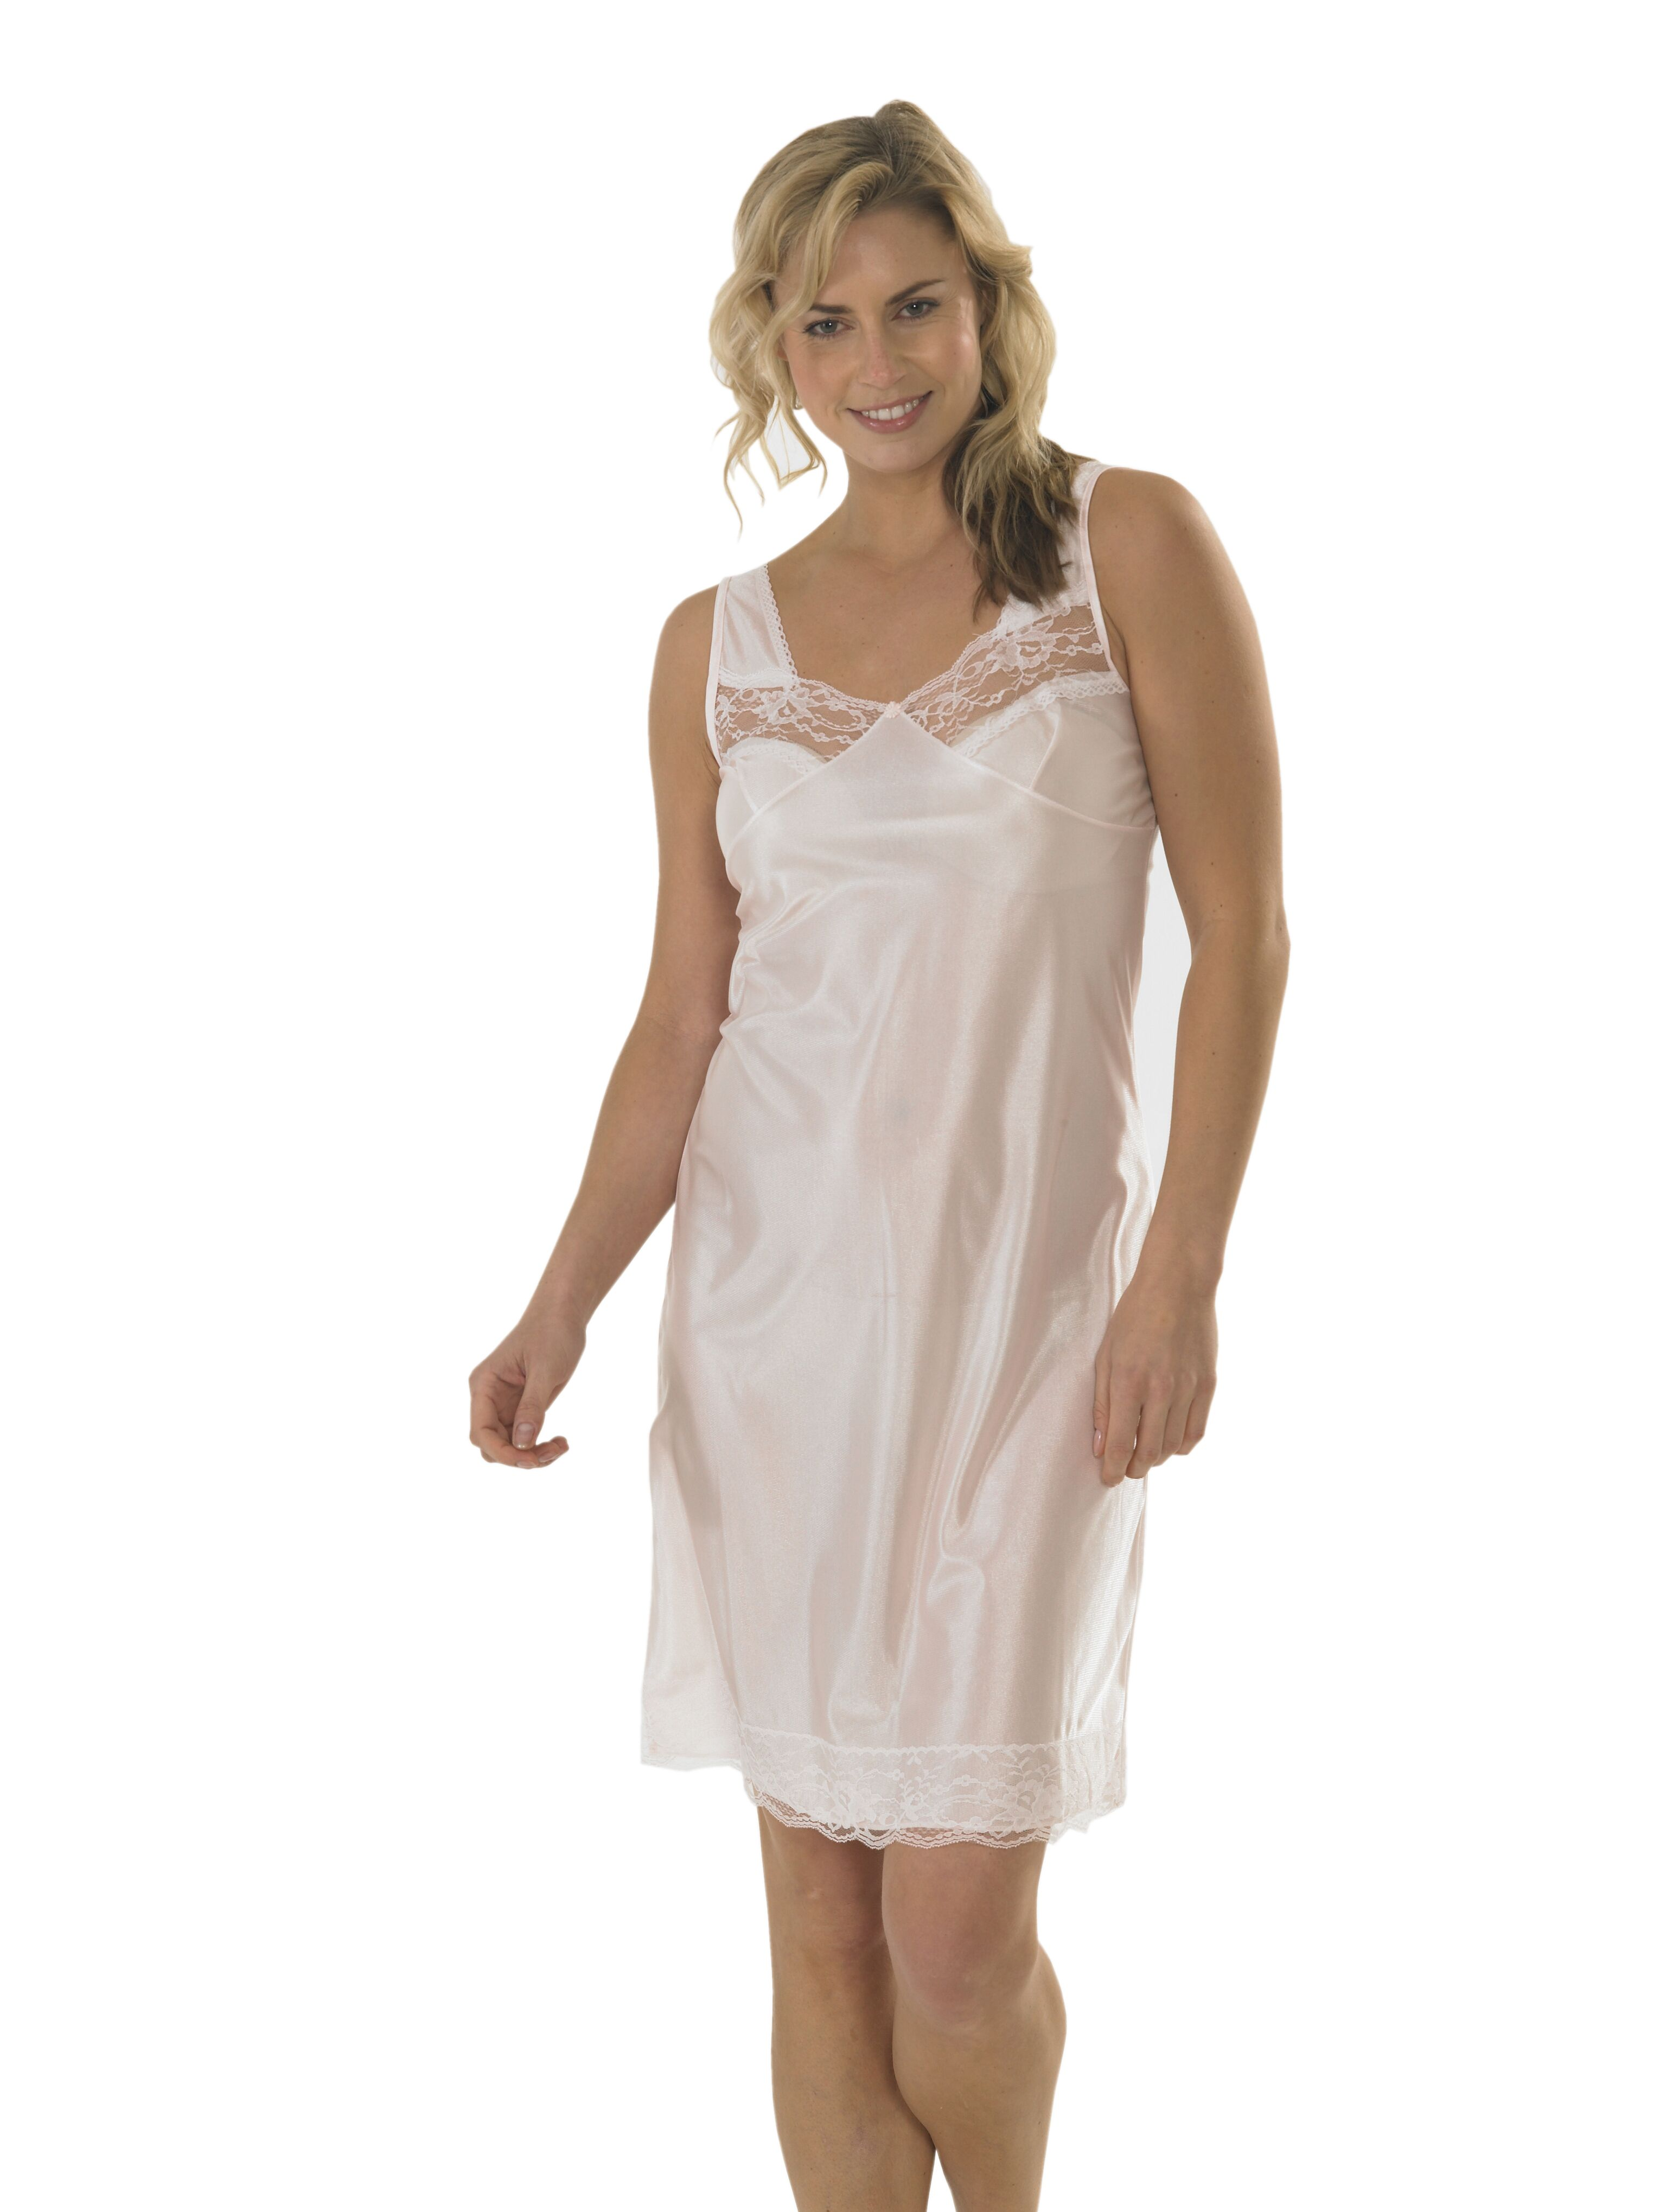 Buy Slips at Macy's and get FREE SHIPPING with $99 purchase! Shop for a slip dress, half slip, strapless slip and more popular styles of body shaping slips.